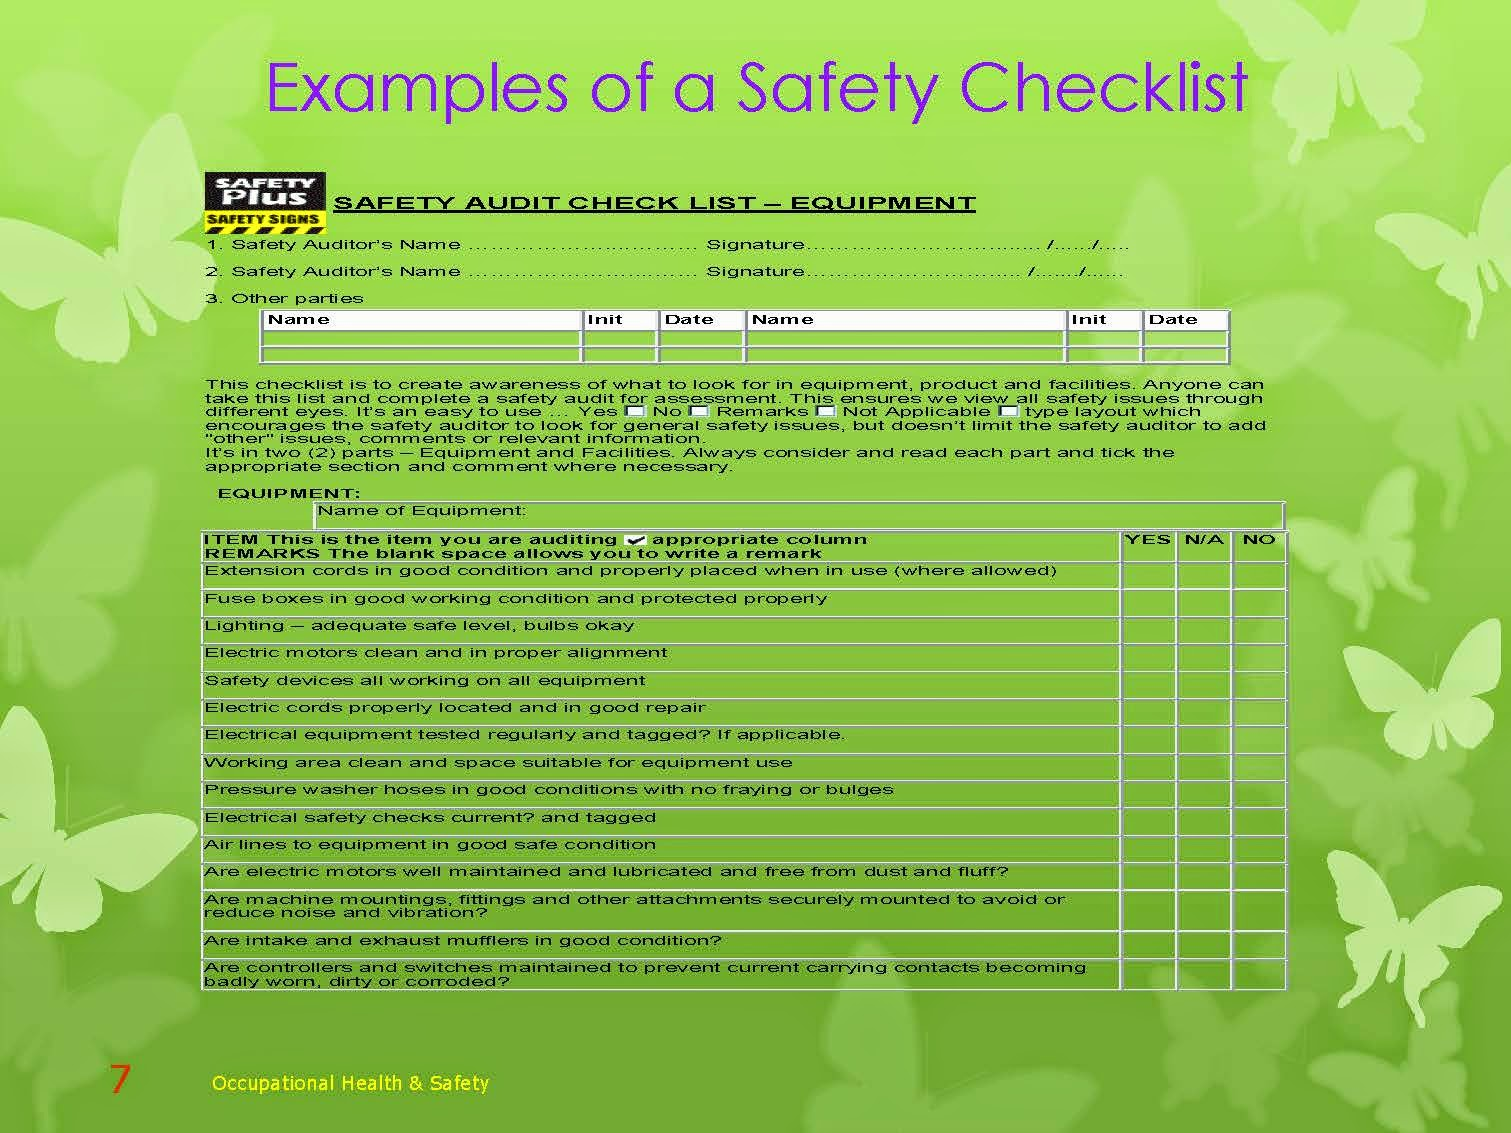 SAFETY CHECKLIST EXAMPLES